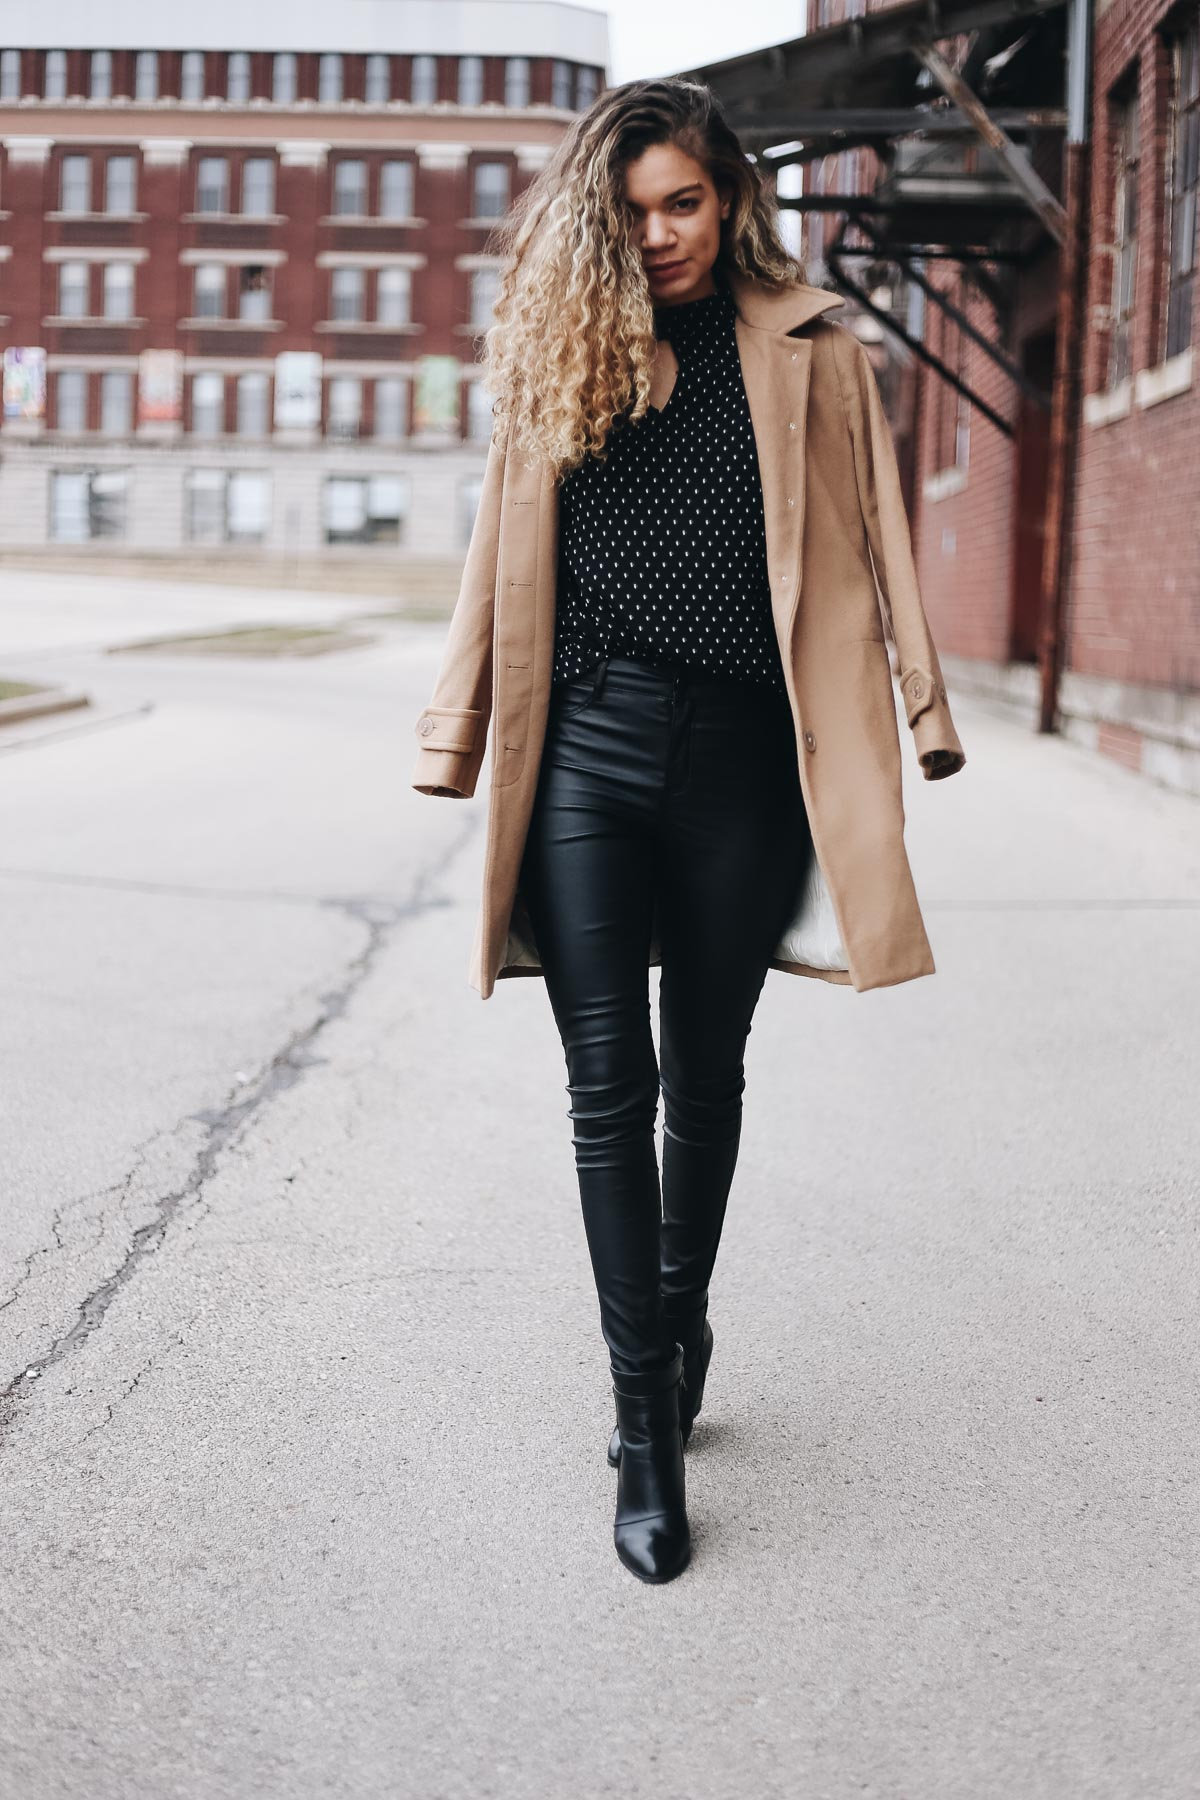 Carolyn of My Chic Obsession shows you the perfect street style looks that are edgy and chic